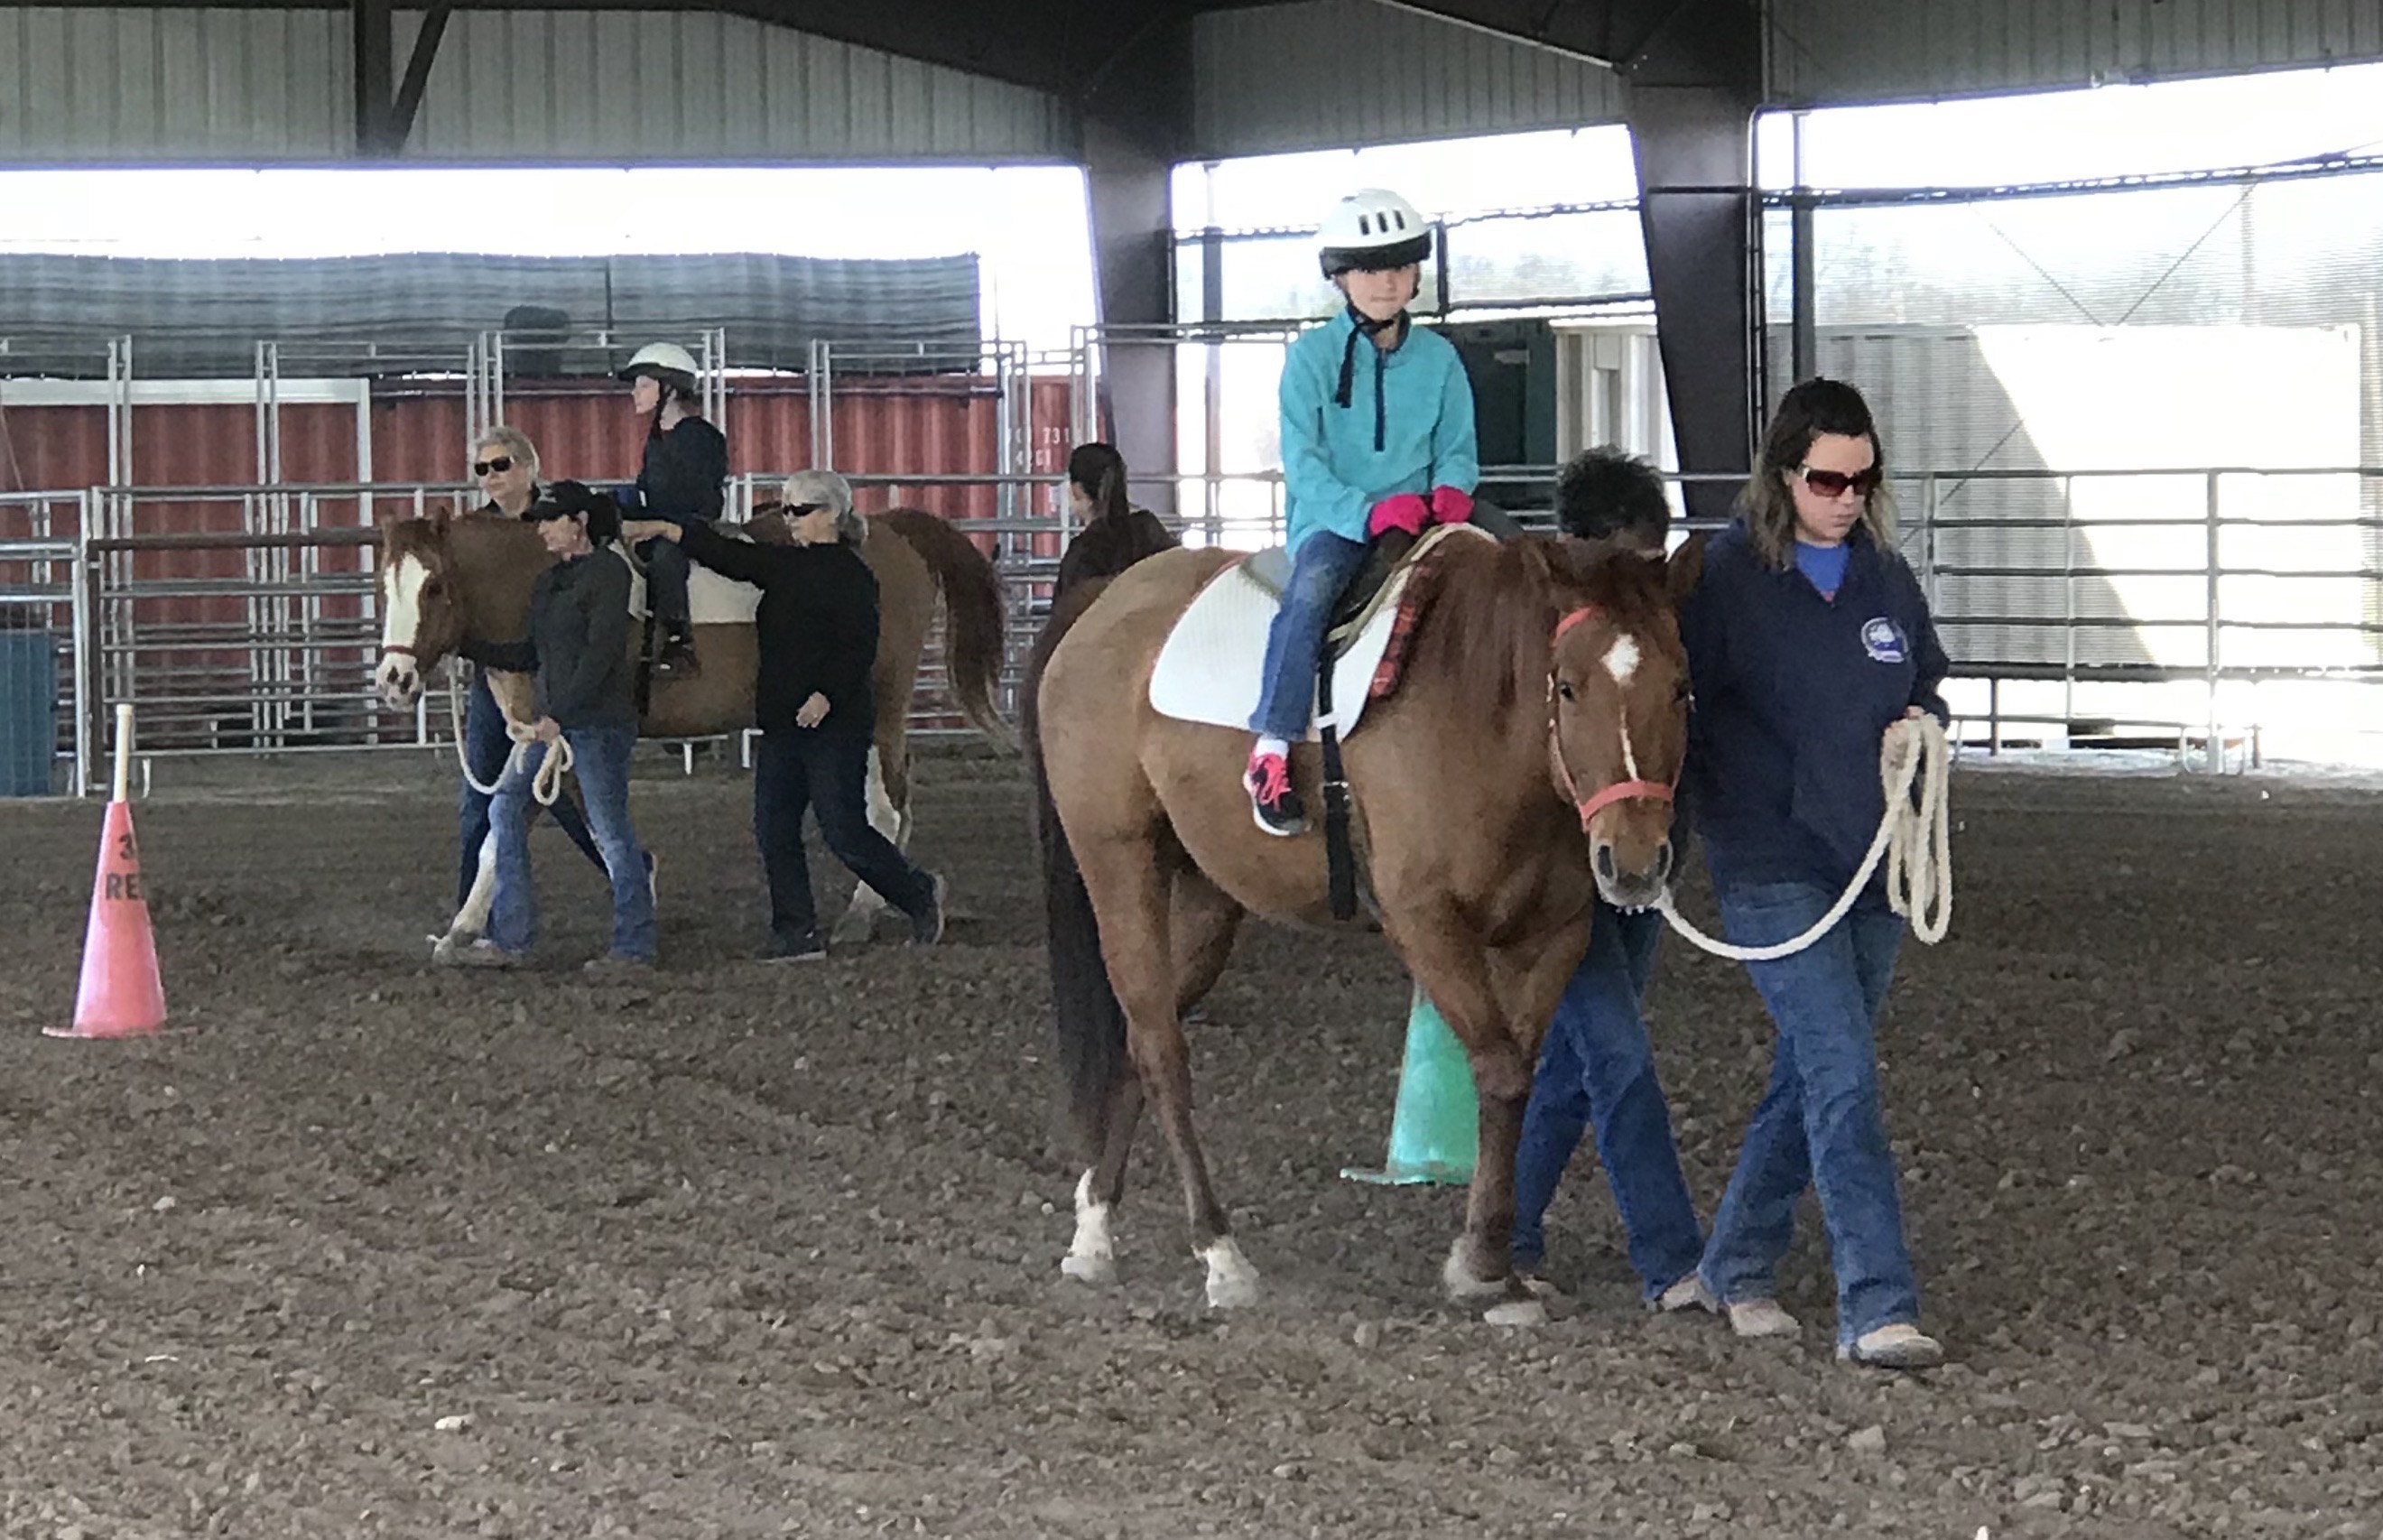 Students ride horses at Sonrisas.